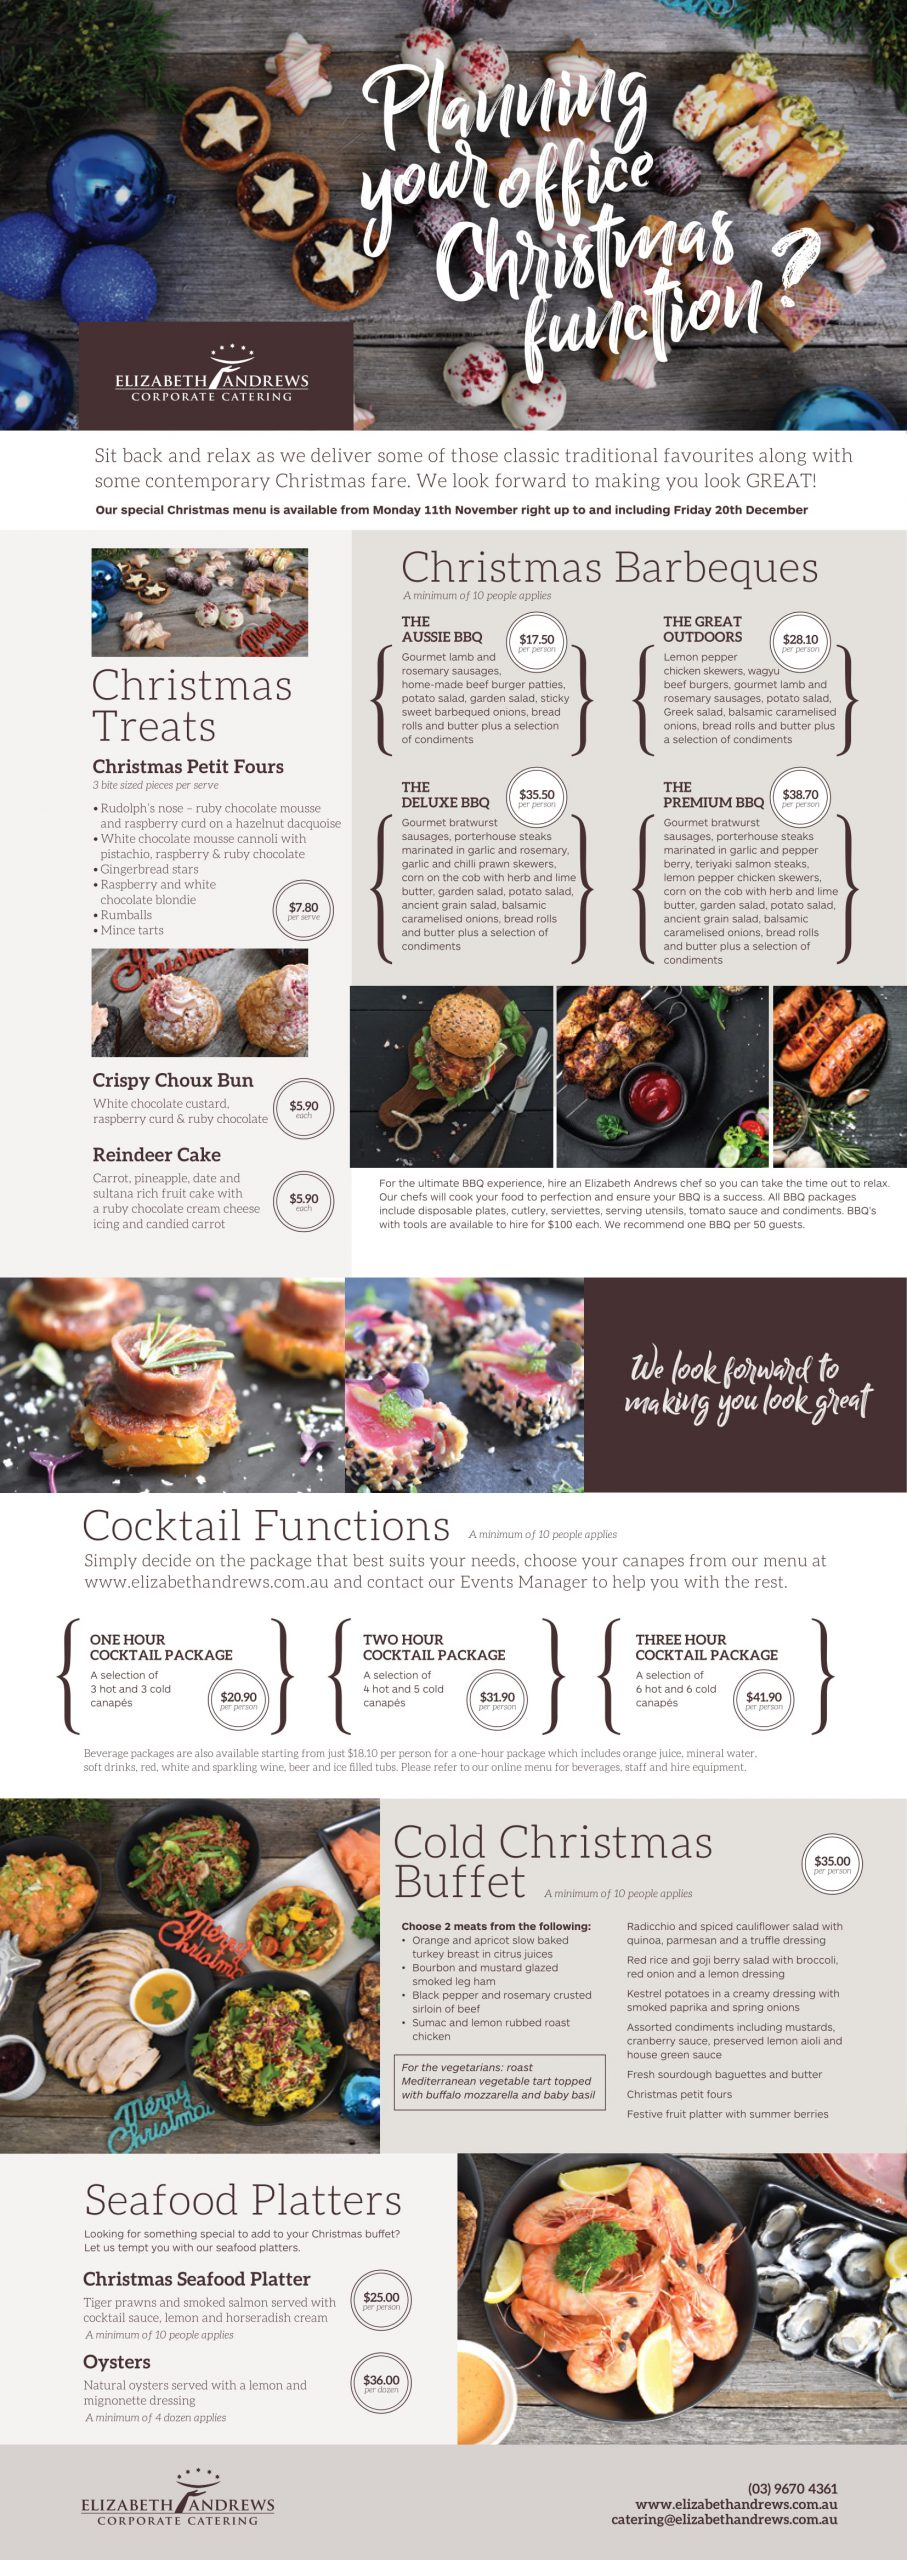 Elizabeth Andrews Catering Christmas Corporate Catering Melbourne